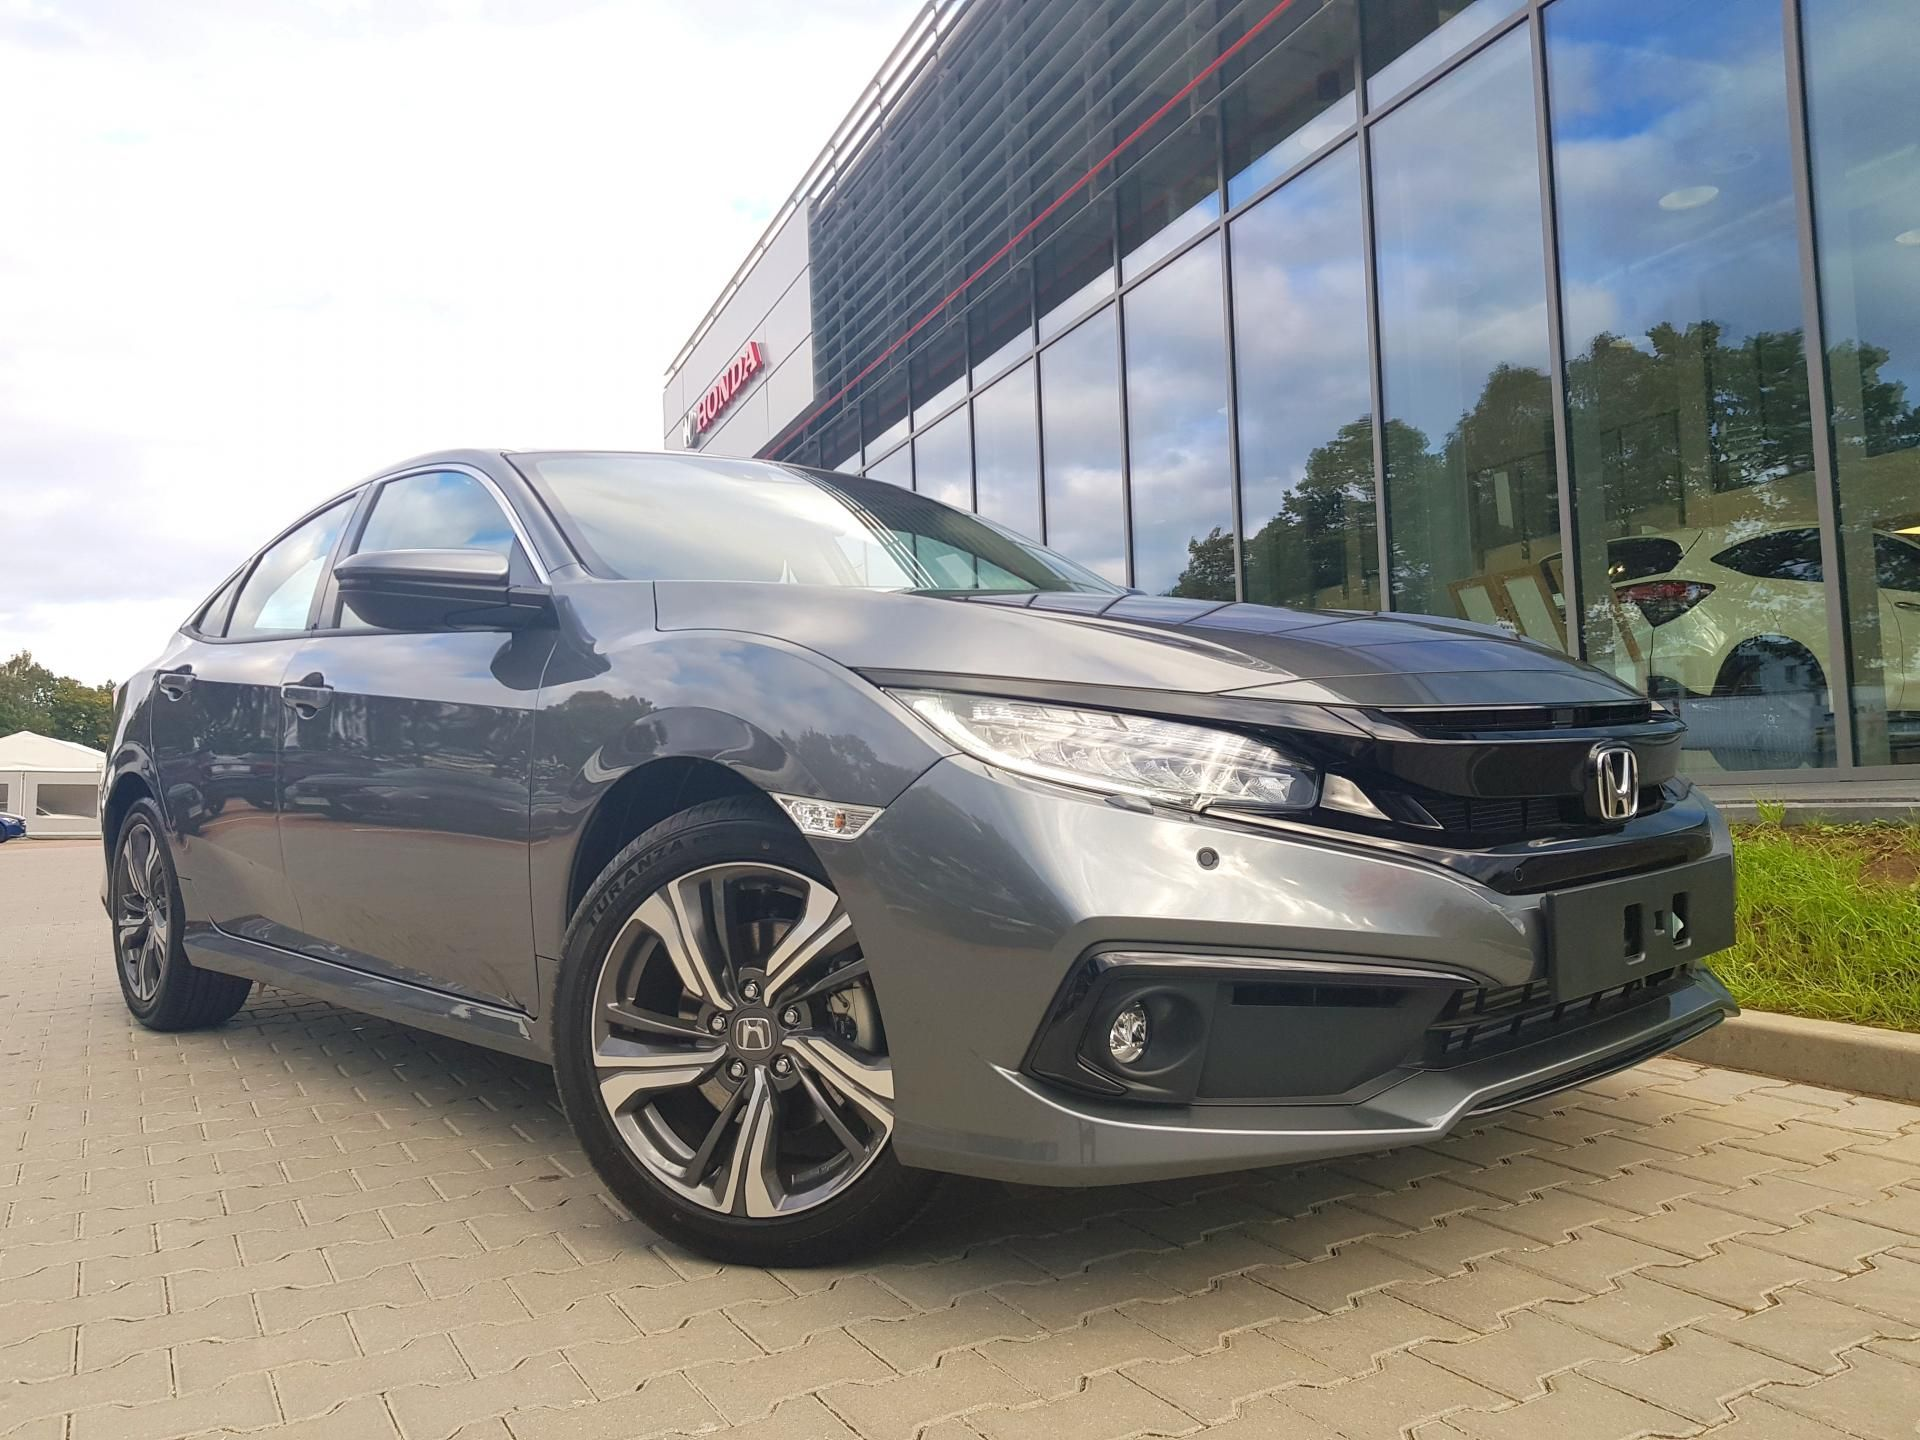 Honda Civic Sedan 1.5 TURBO Executive CVT 2020  RABAT 12 000,-